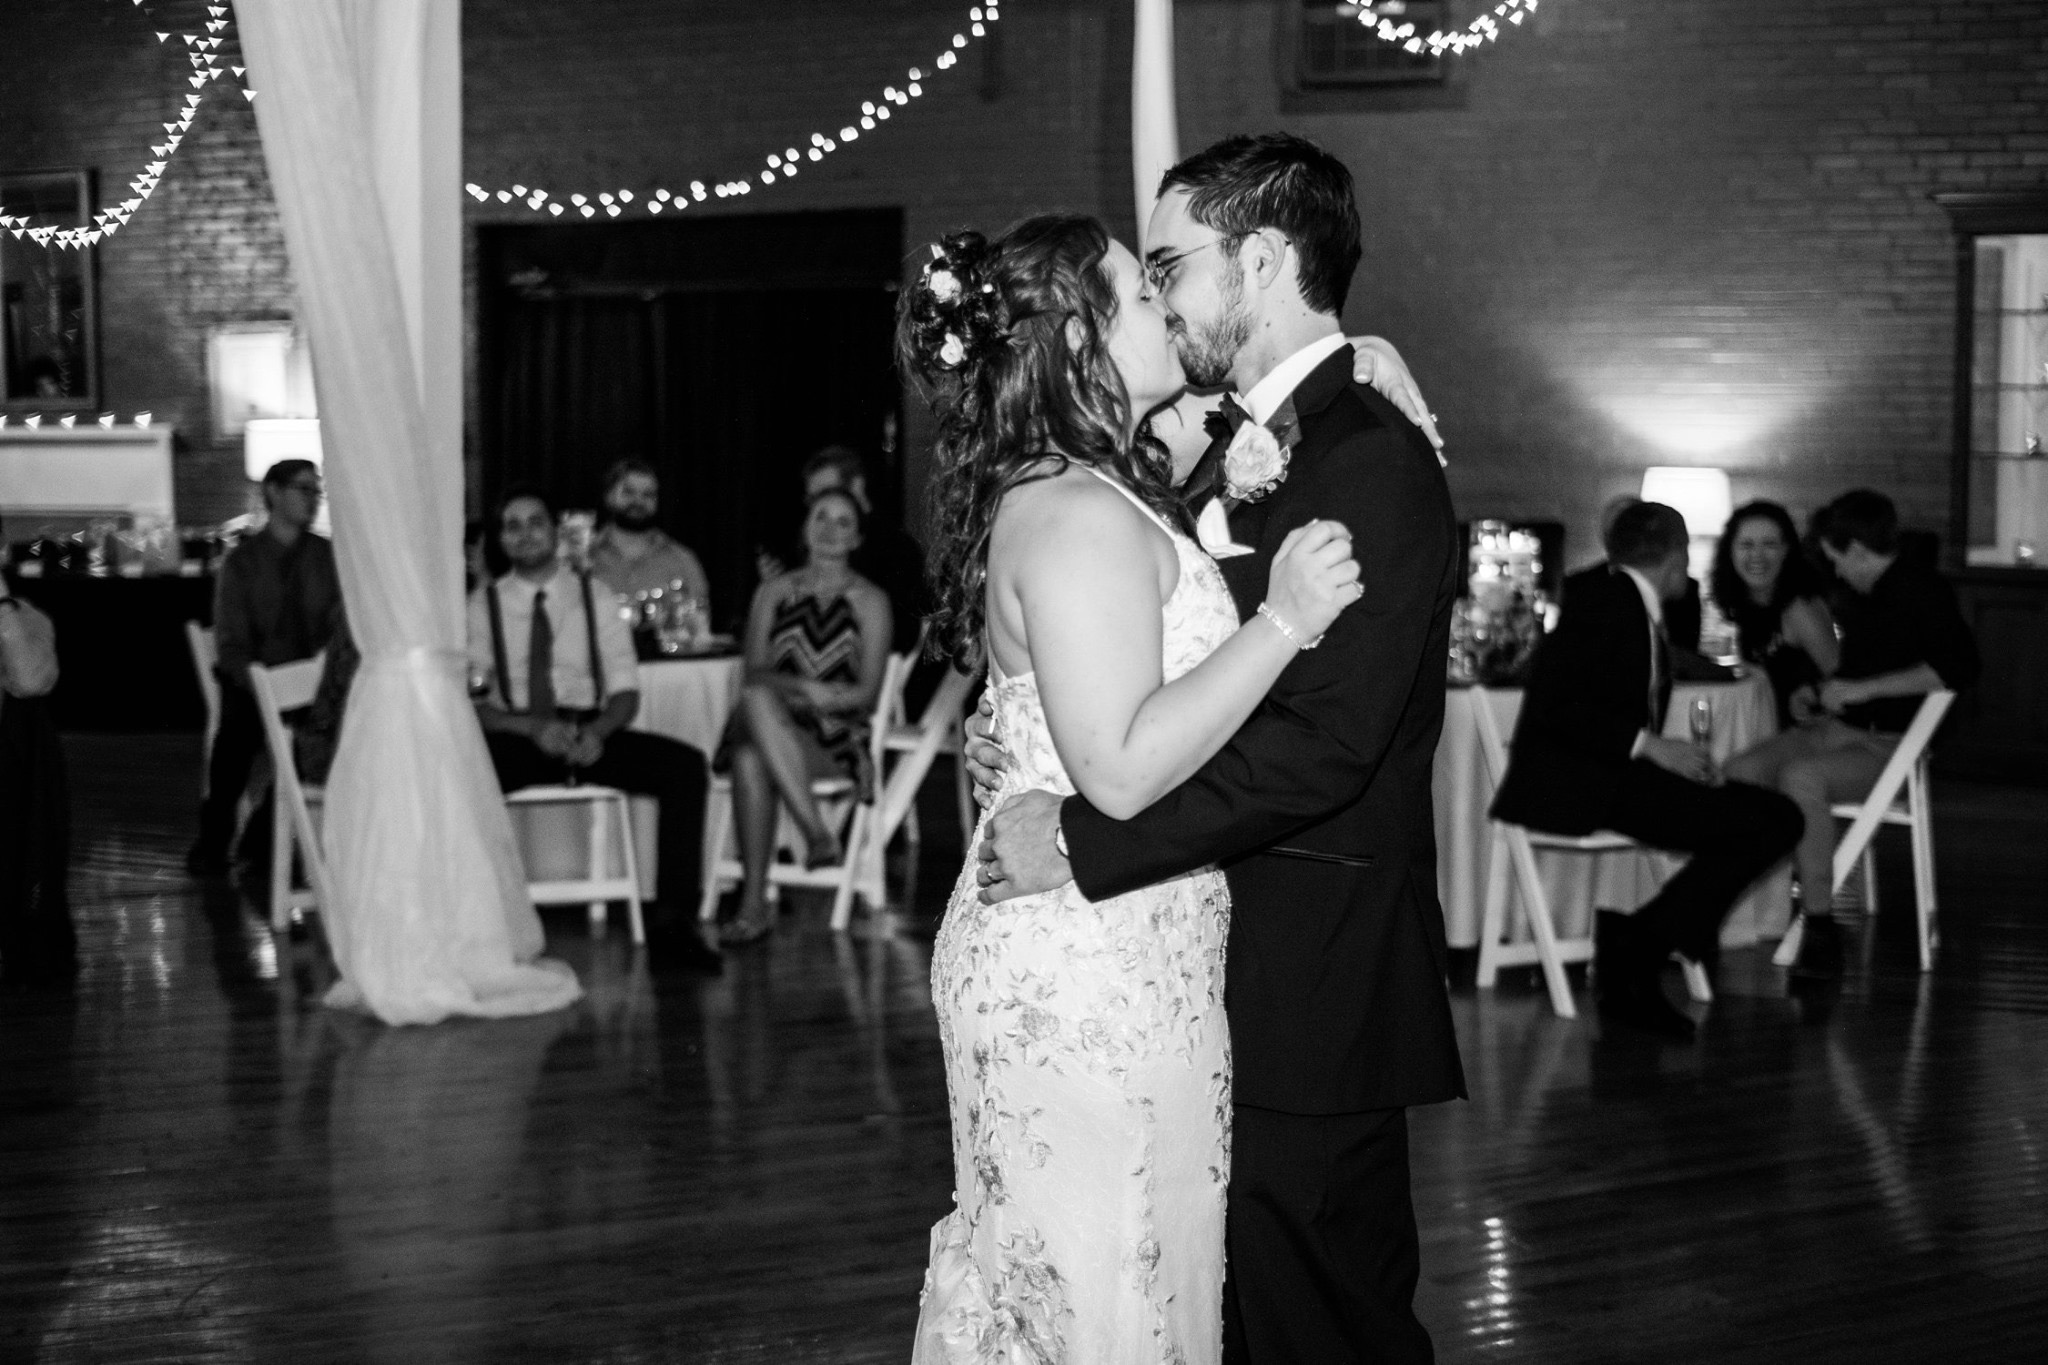 First dance vibes.